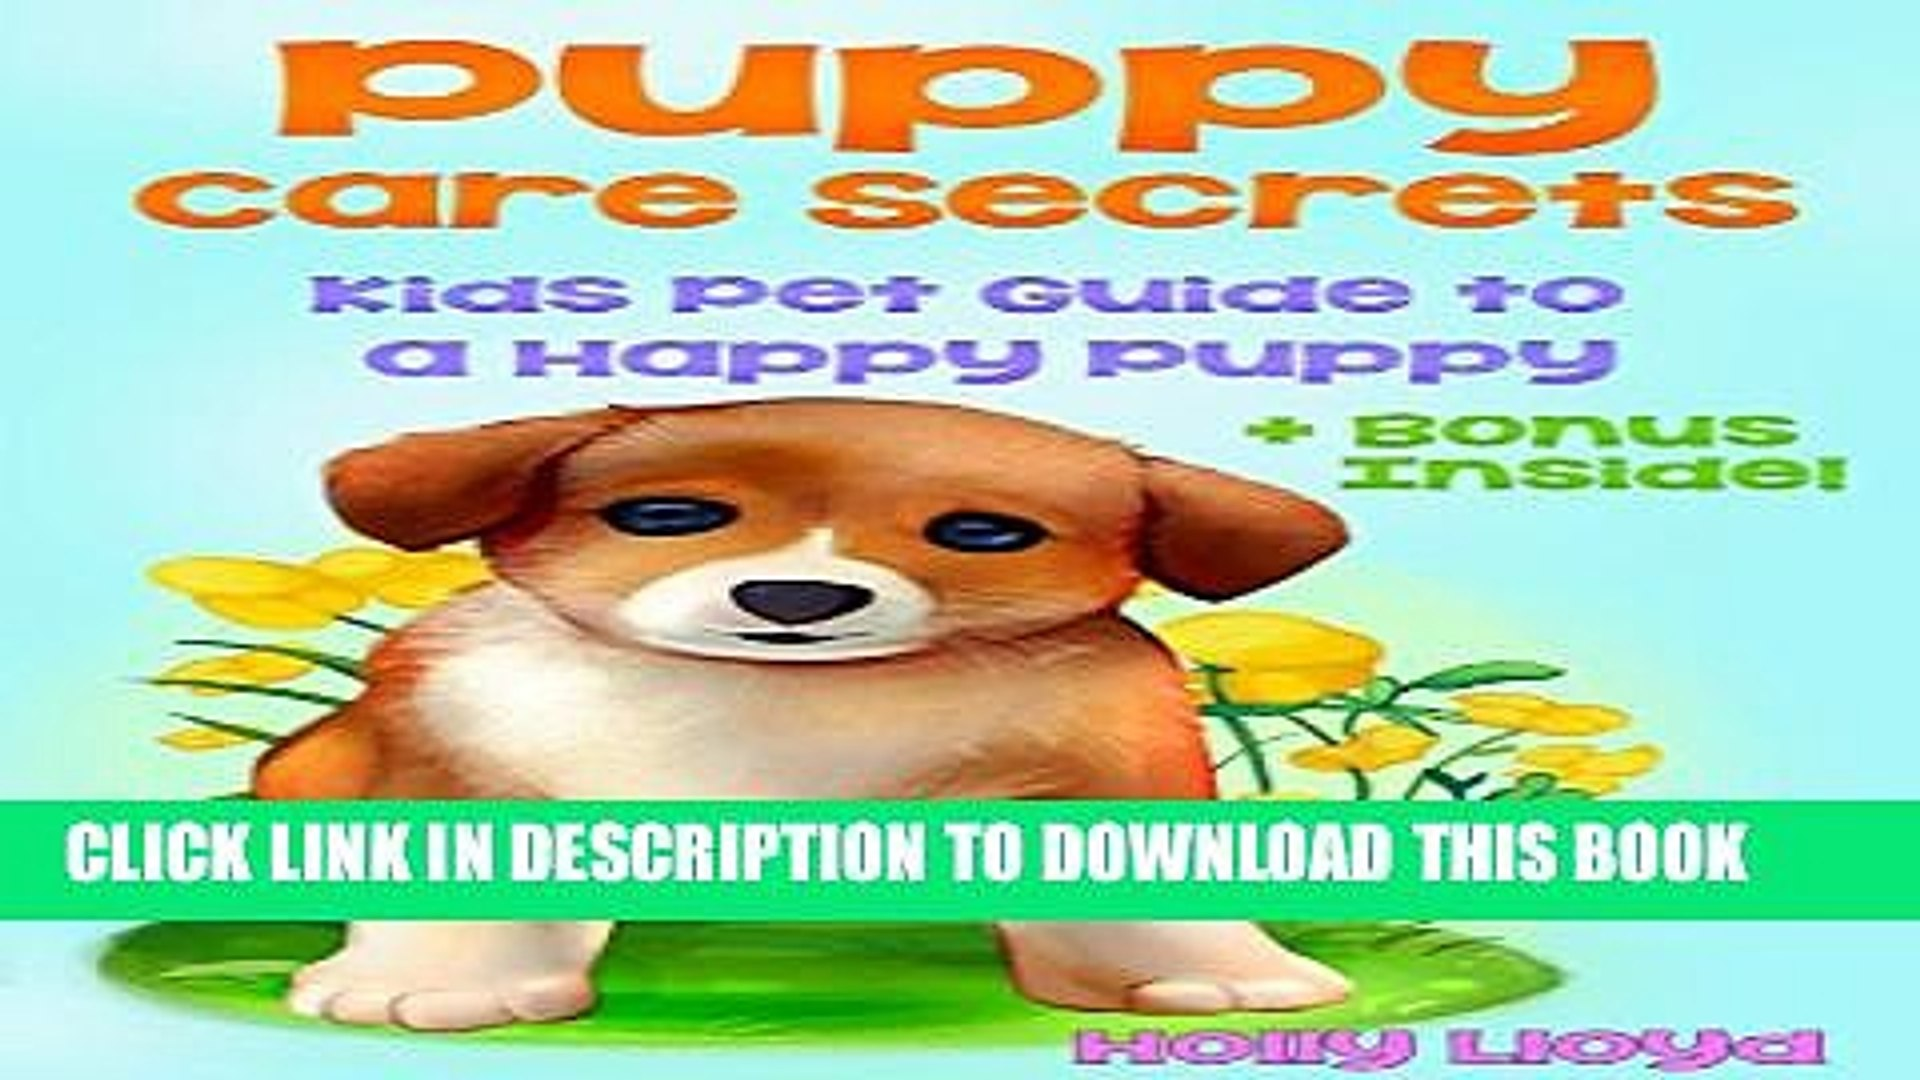 [PDF] Puppy Care Secrets: Kids Pet Guide to a Happy Puppy (Kids Pet Care   Guides Book 4) Full